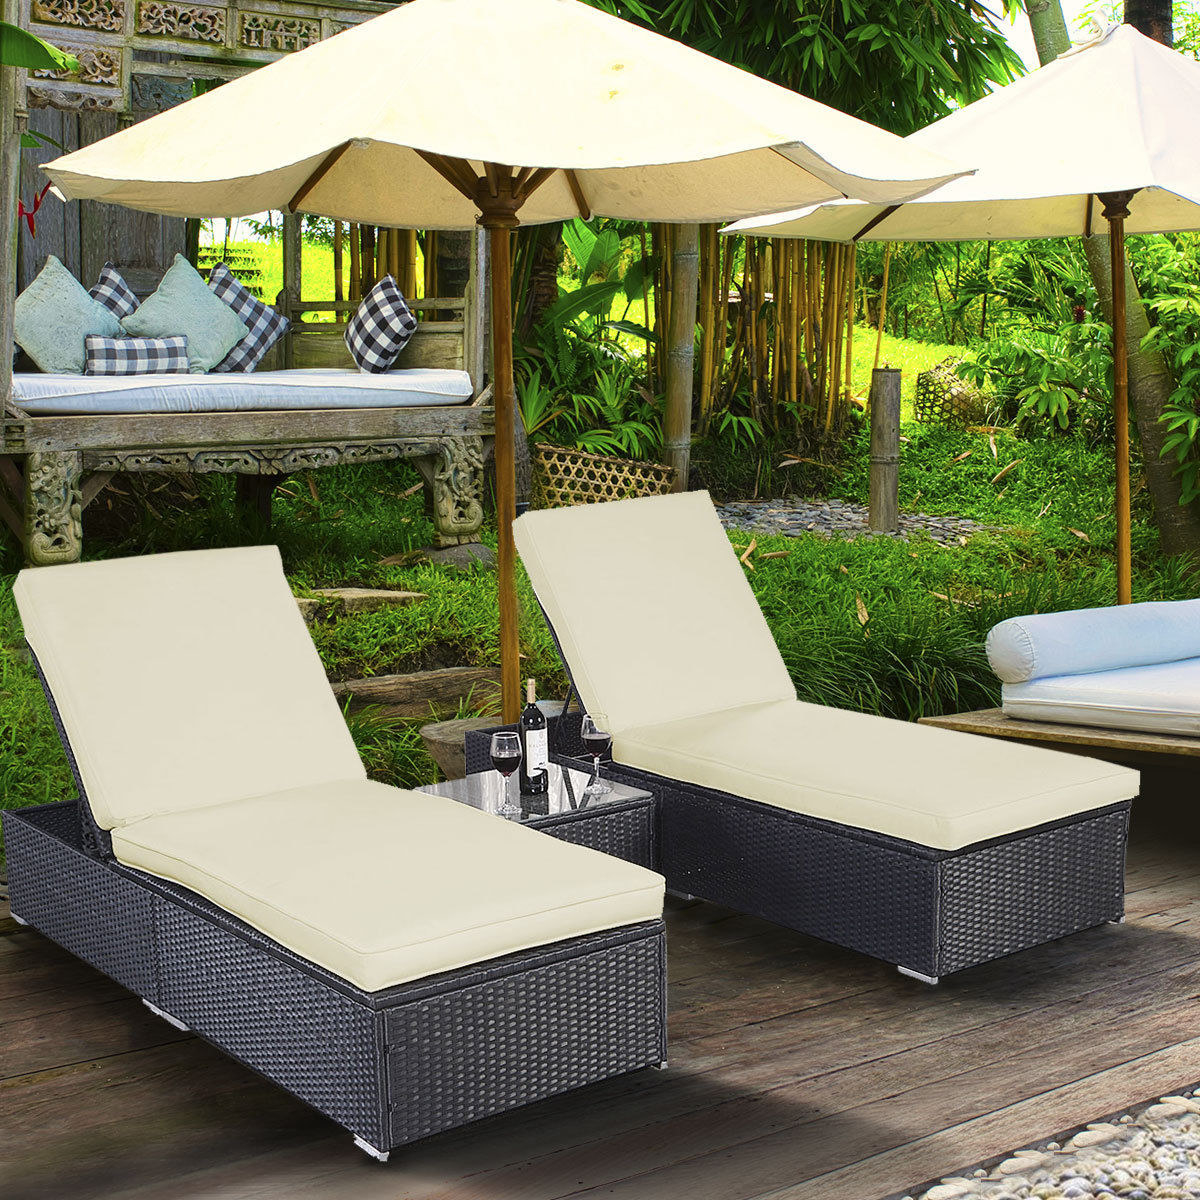 Buy Furniture Online Free Shipping: 25 Of The Best Places To Buy Outdoor Furniture